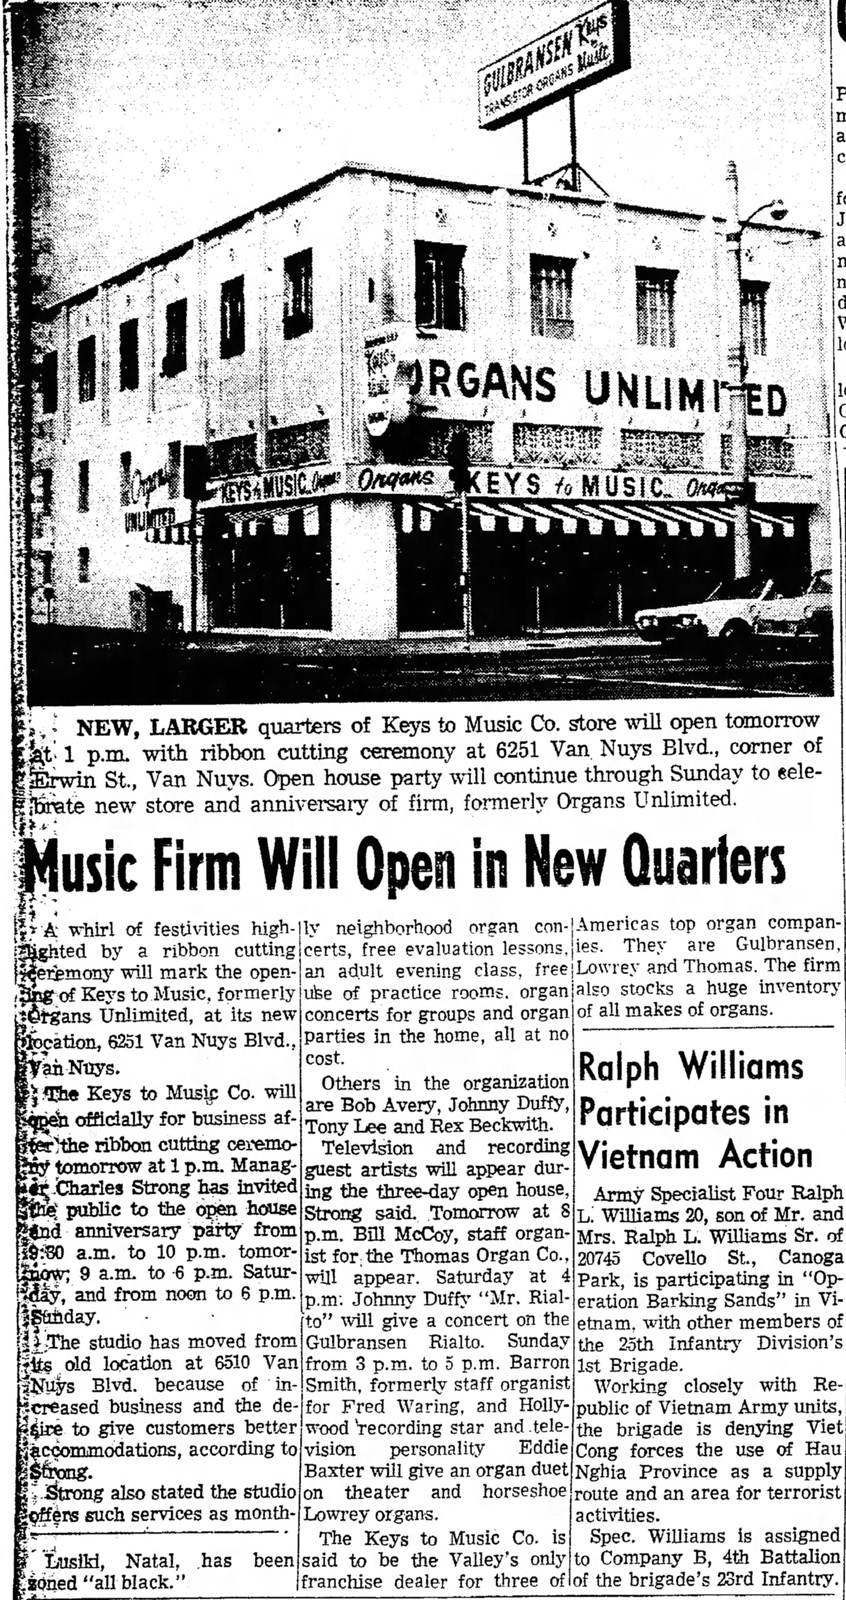 Valley News, 16th November, 1967, article on Van Nuys, Keys to Music